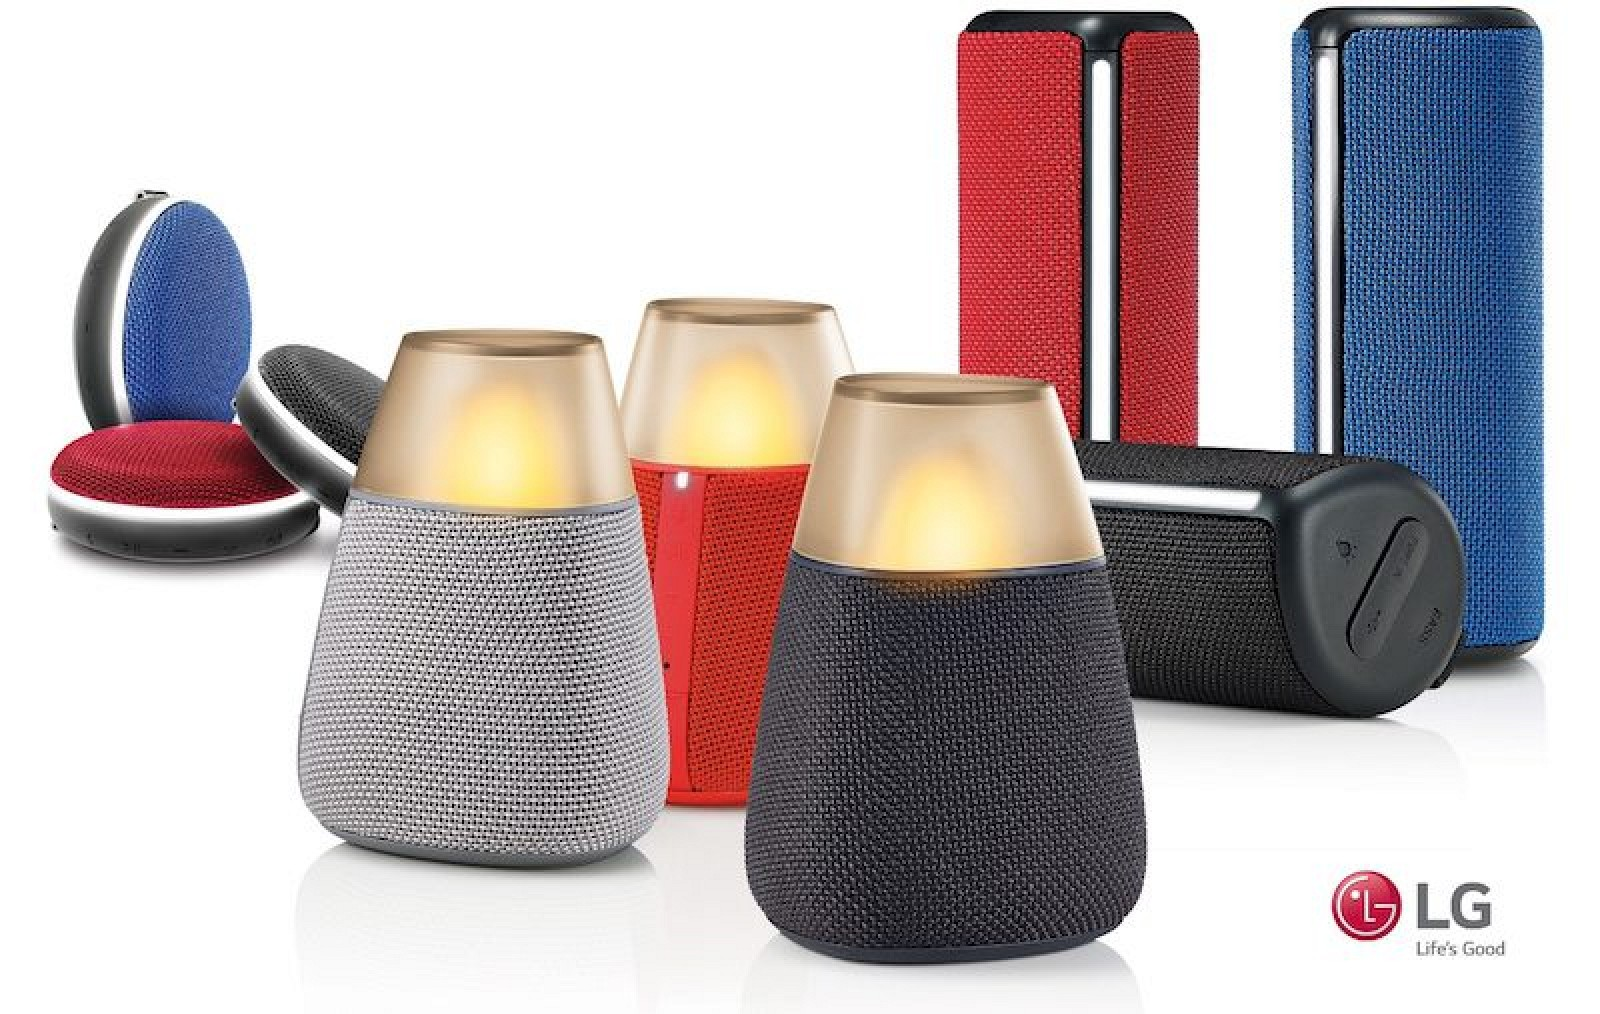 LG Announces New Collection of Bluetooth Speakers Coming This Fall - Mac Rumors